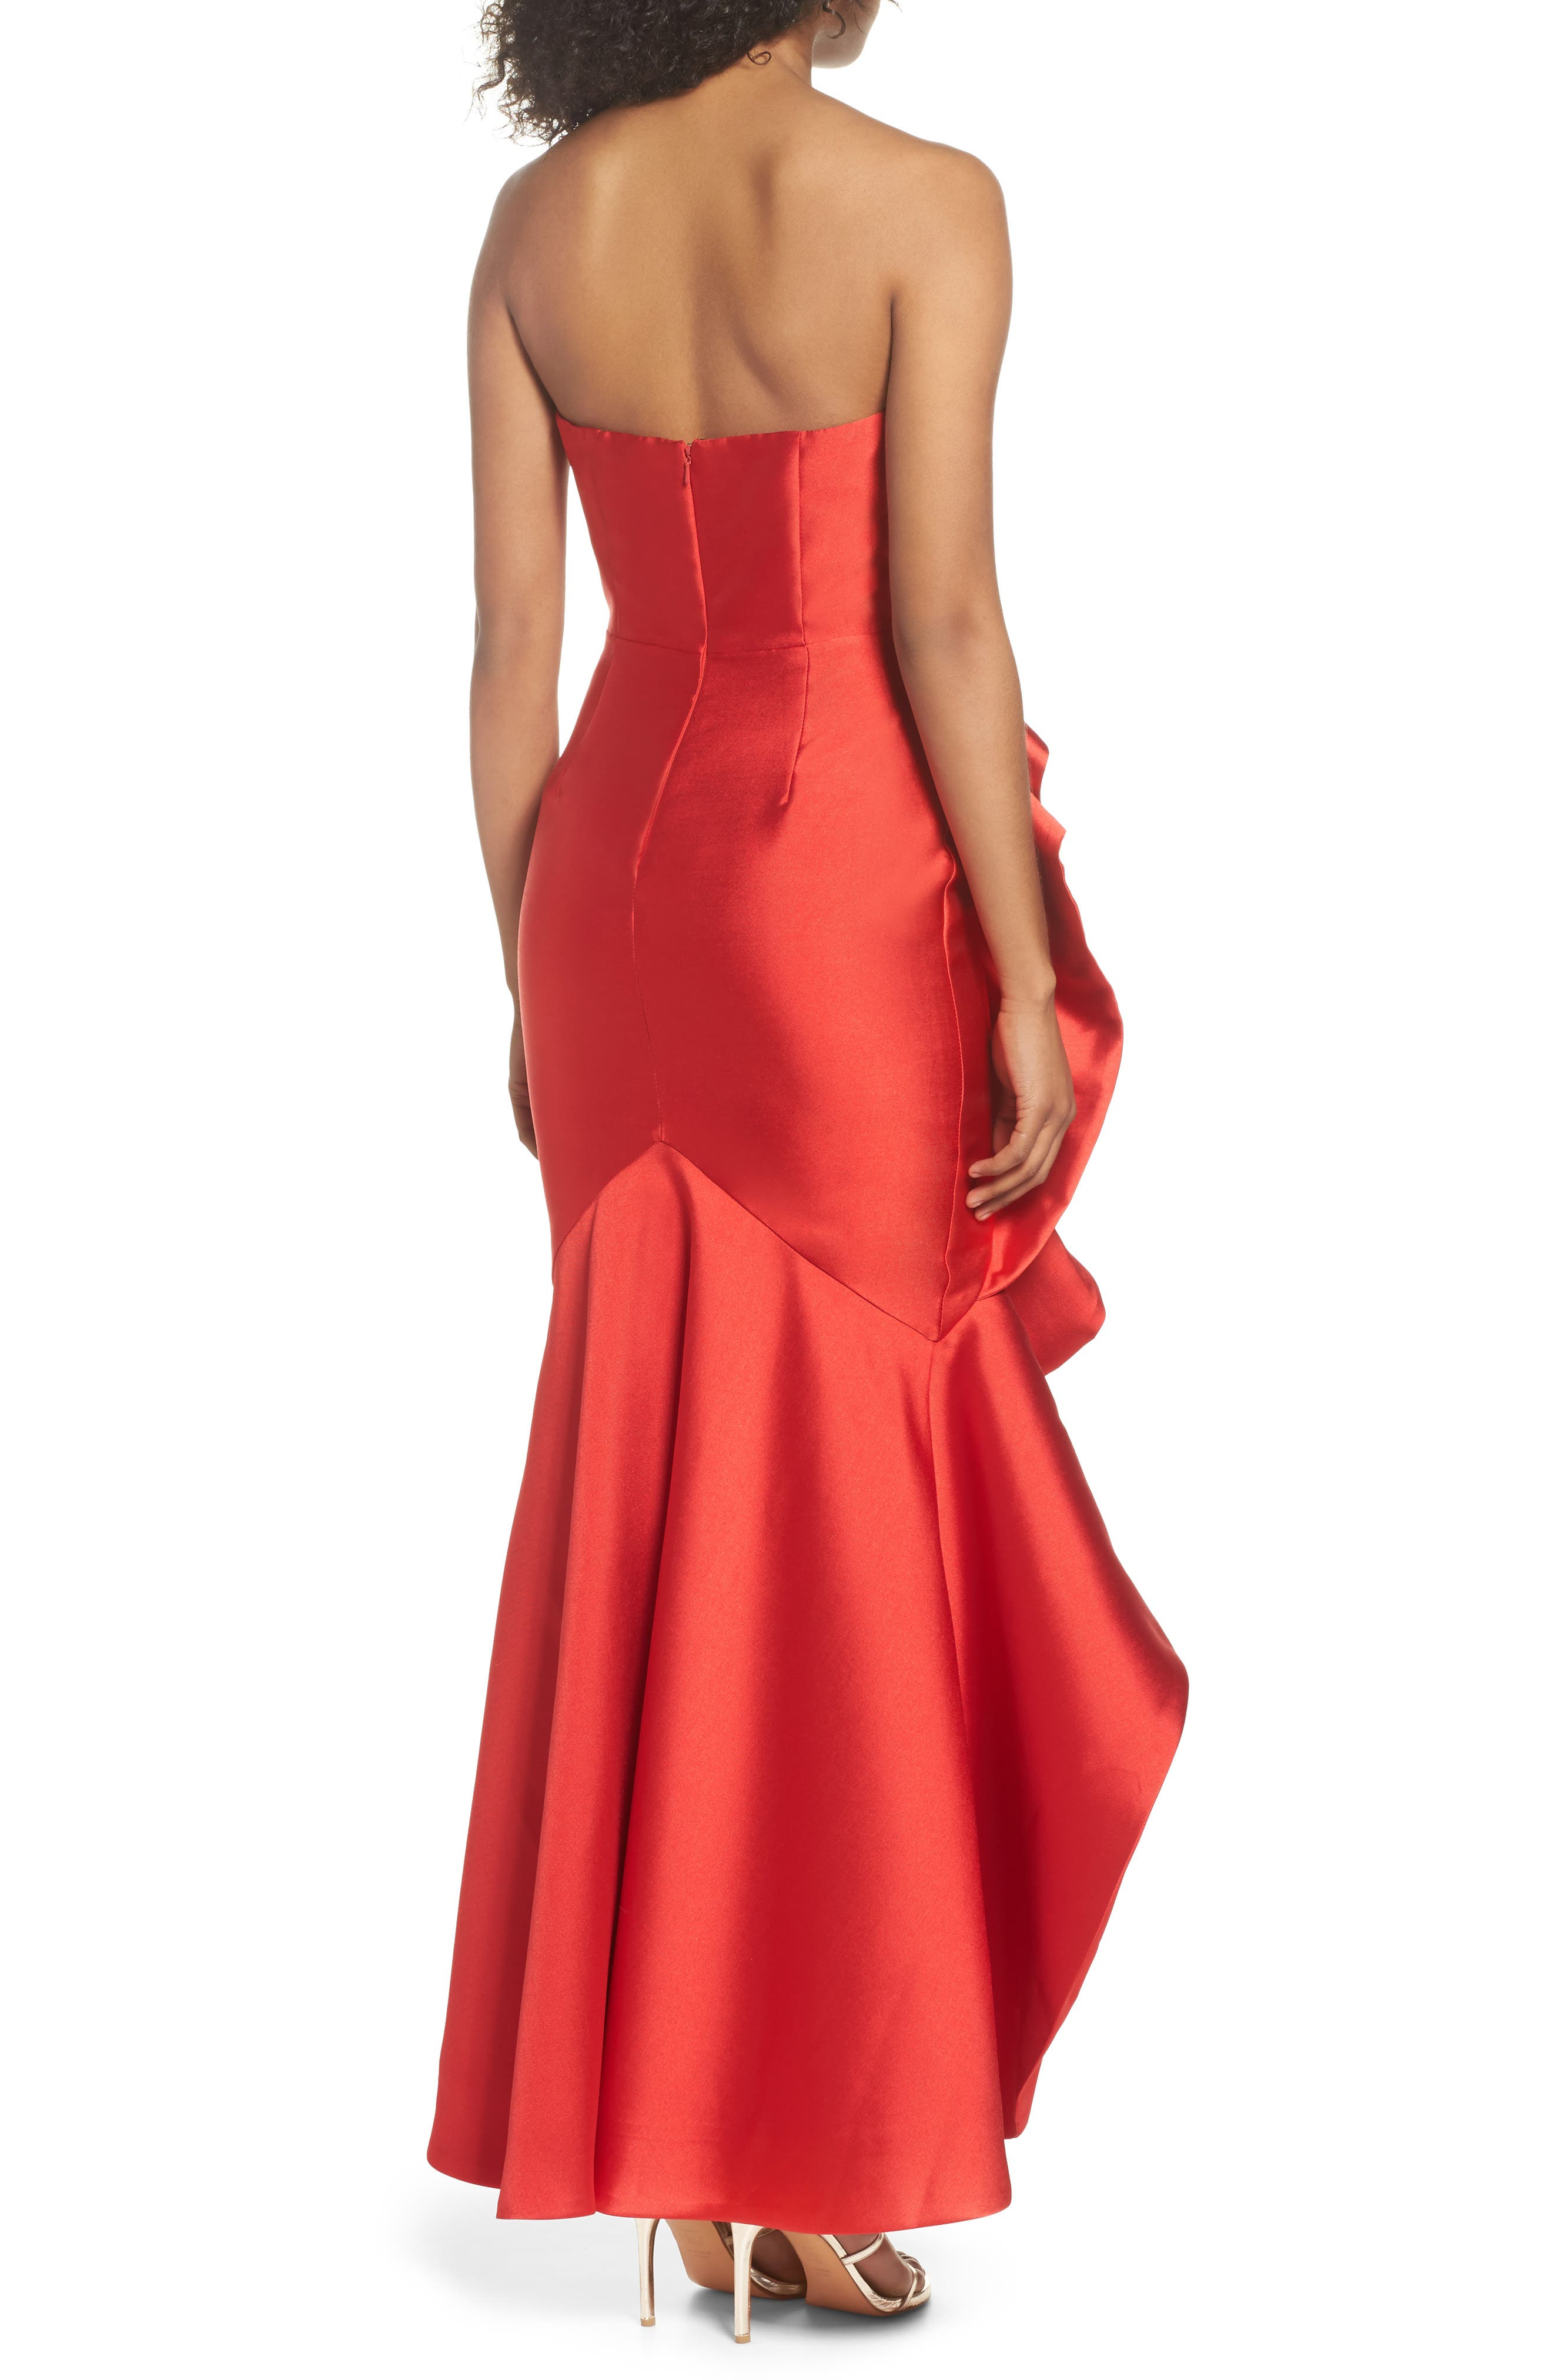 Sellers High/Low Mermaid Gown,                             Alternate thumbnail 2, color,                             Red